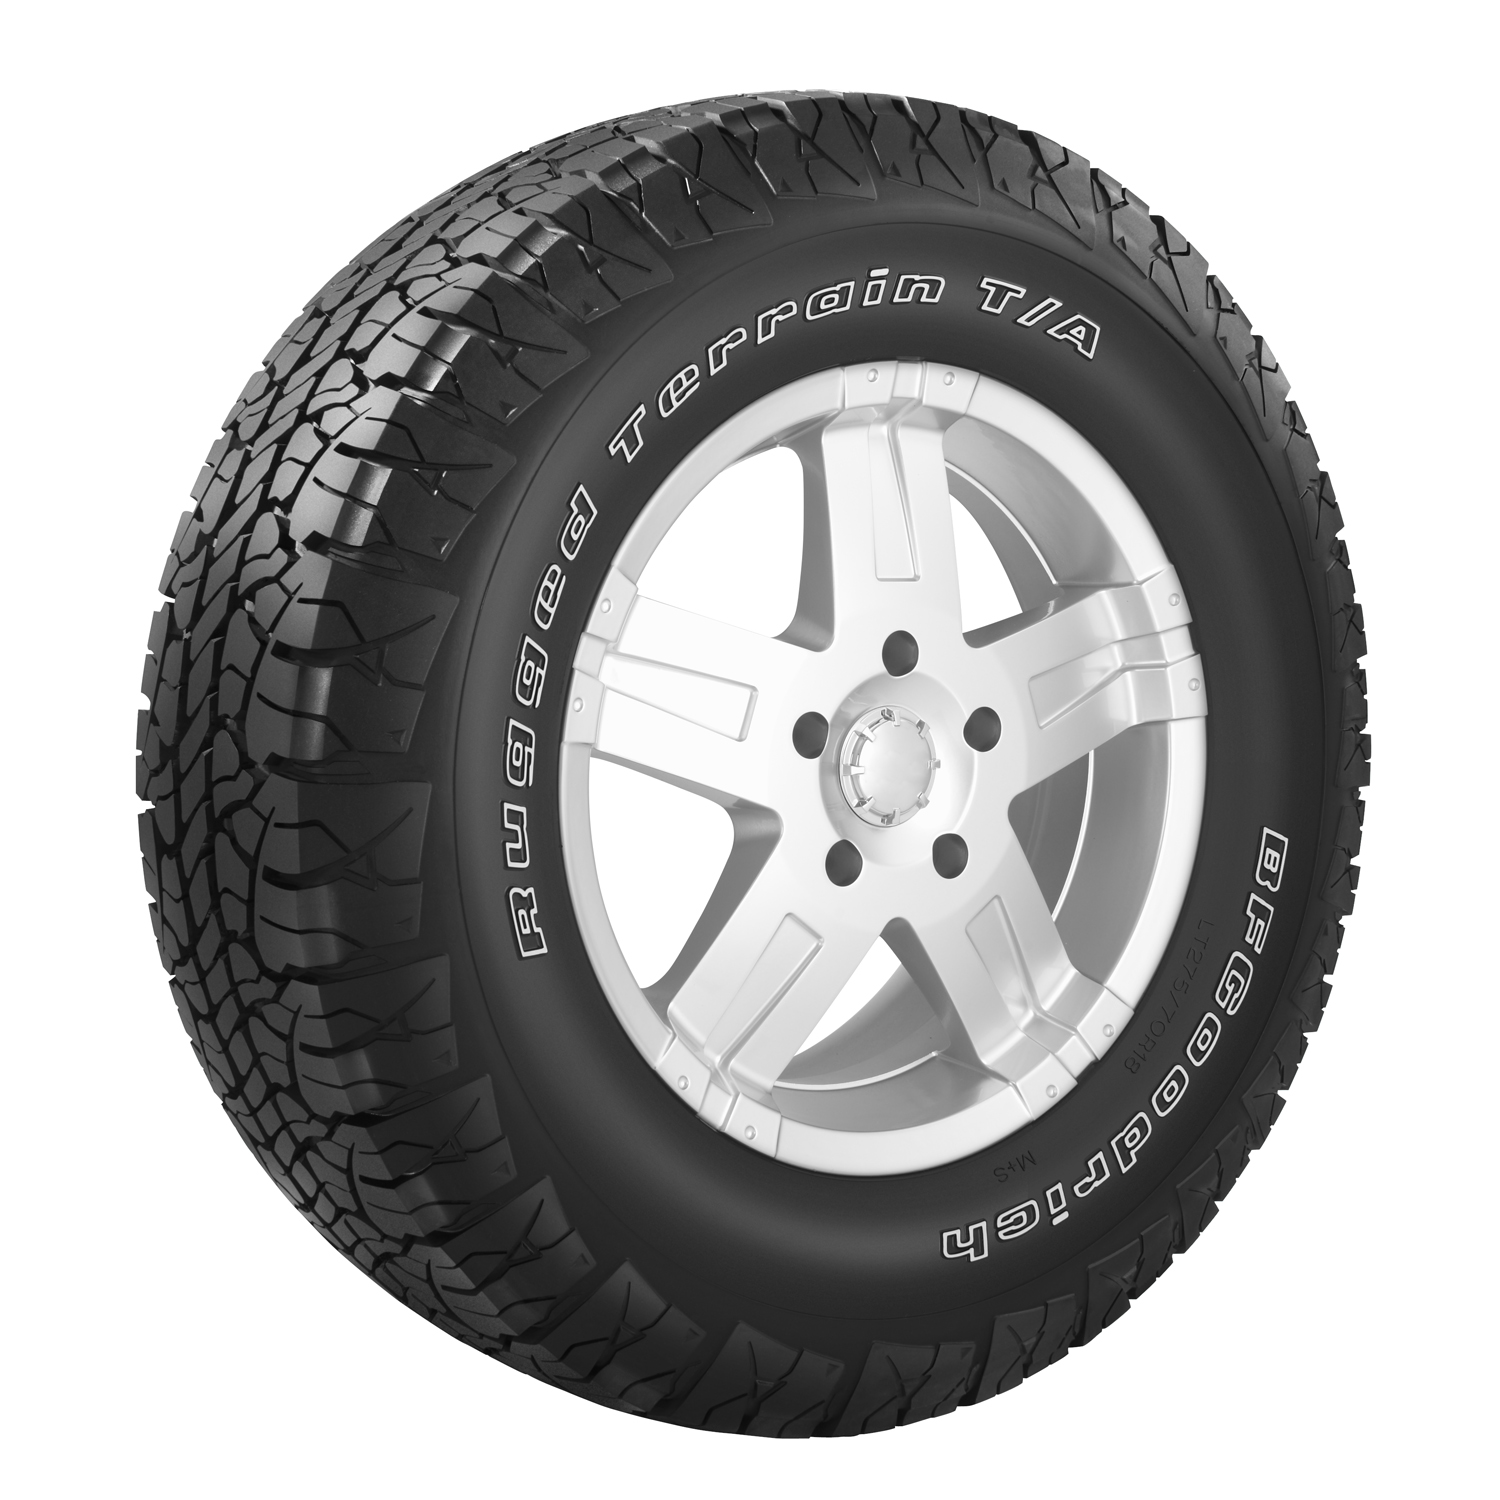 BFGoodrich Rugged Terrain T/A - P265/70R15 110T OWL - All Season Tire 265-70-15